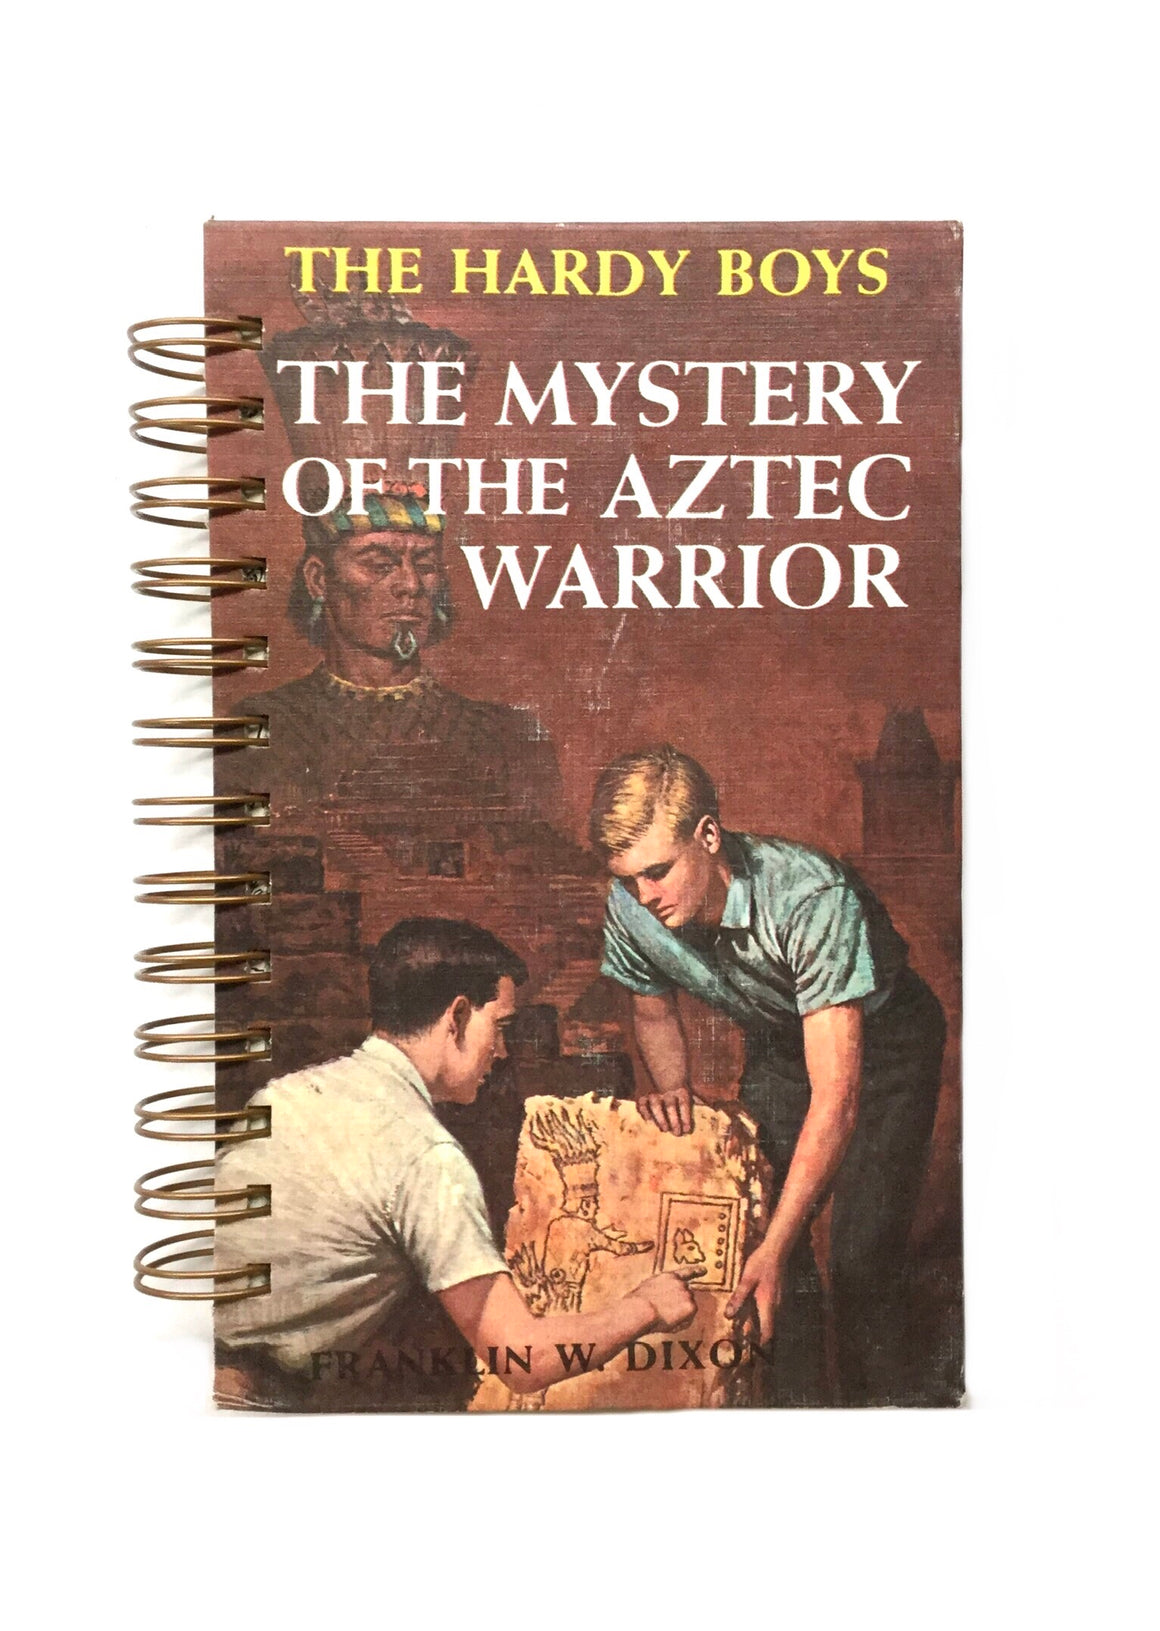 The Hardy Boys #43 - The Mystery of the Aztec Warrior-Red Barn Collections